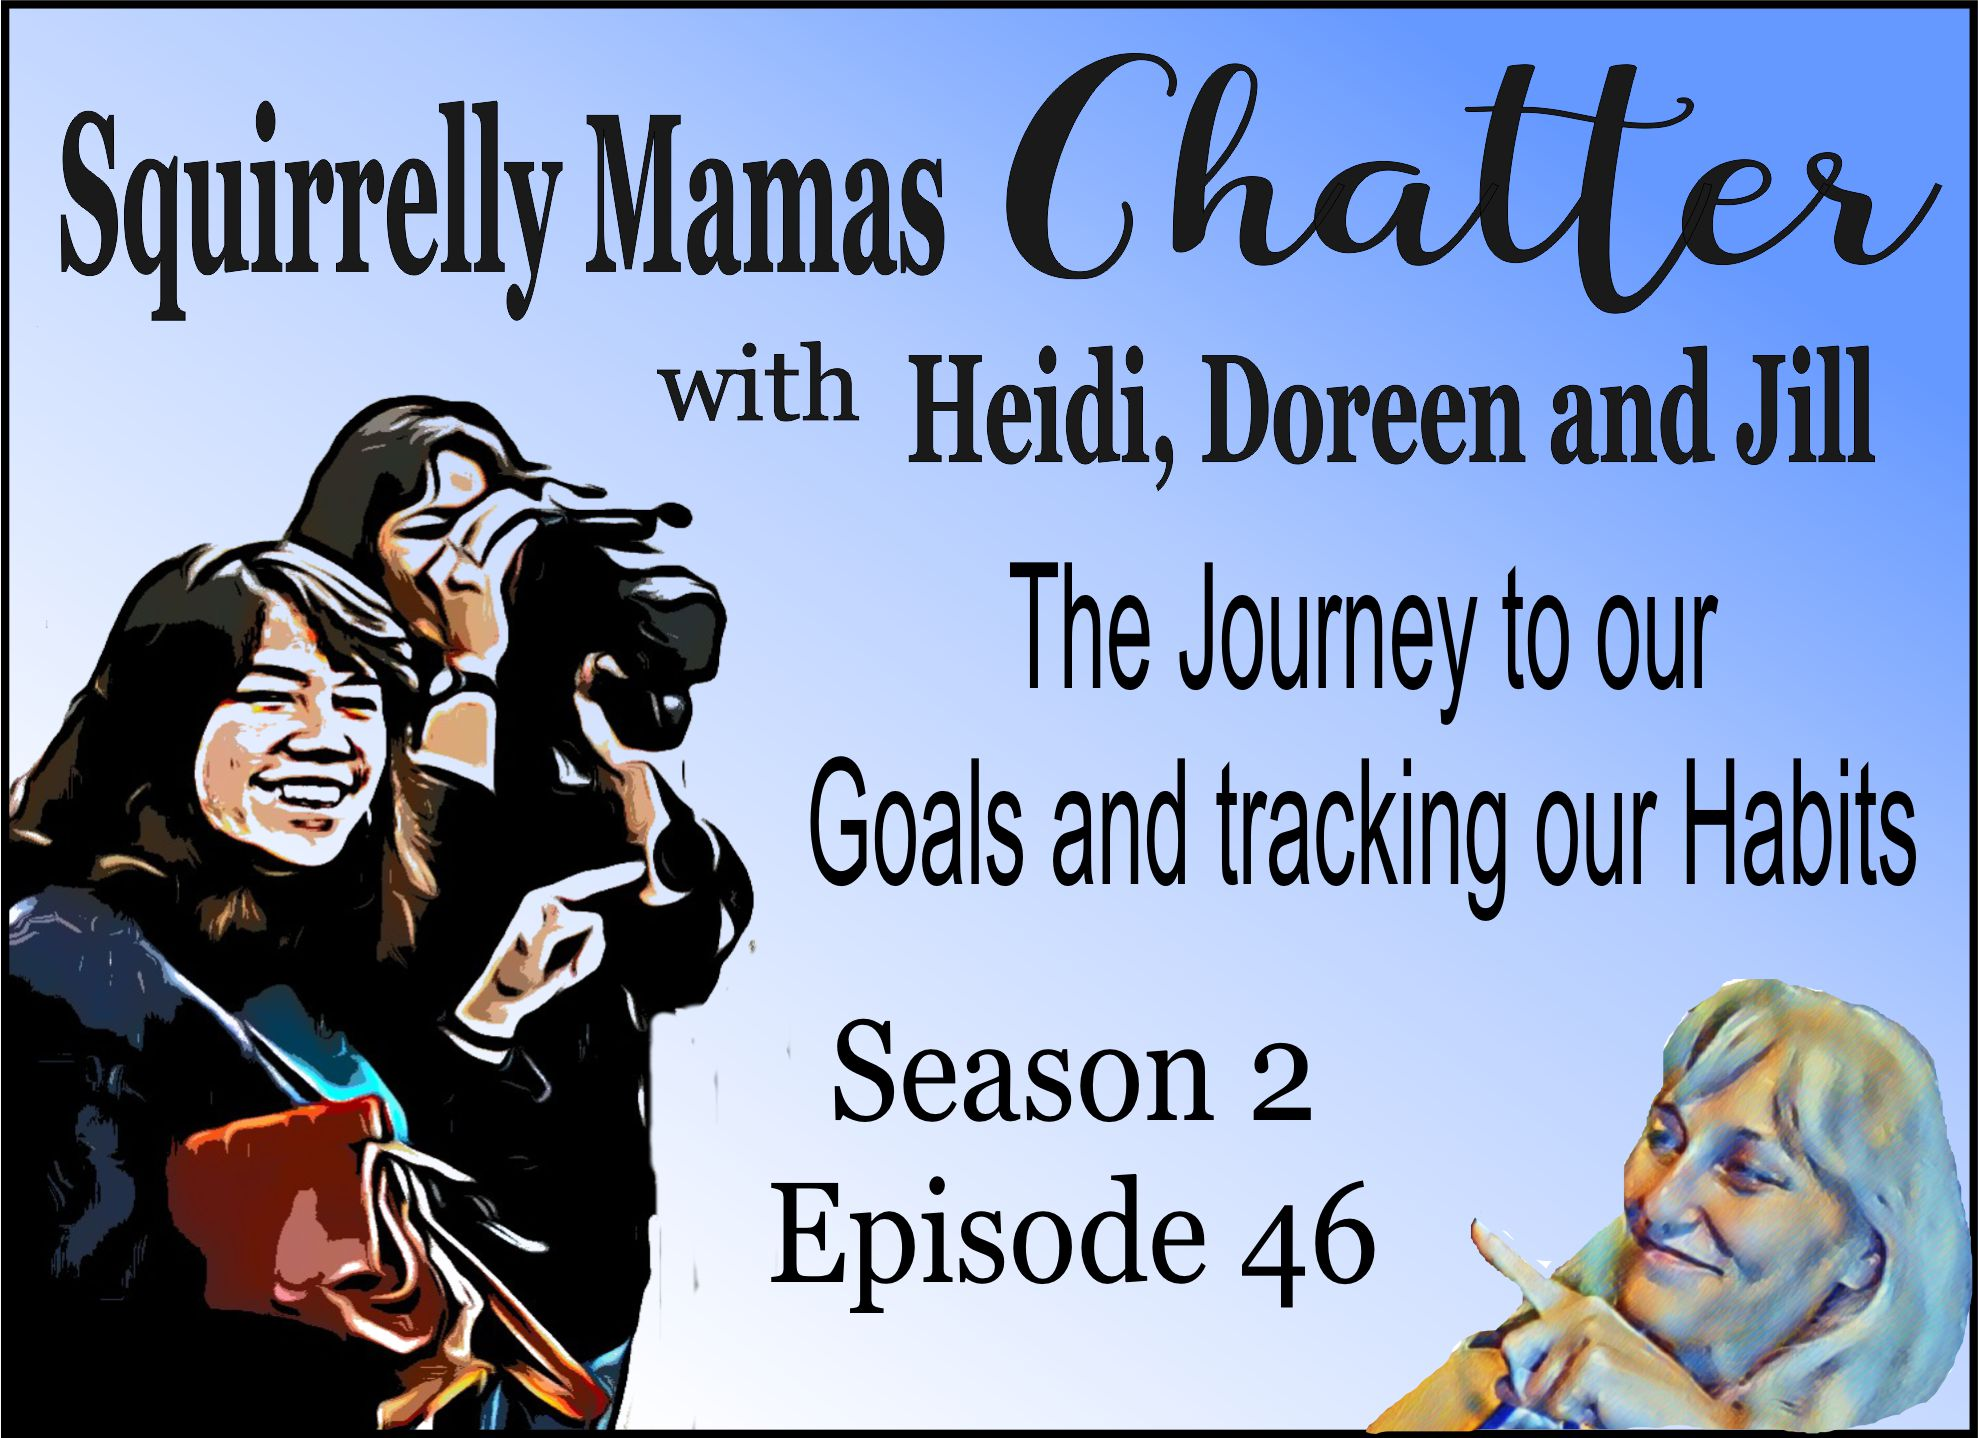 046 The Journey to our Goals and Creating New Habits